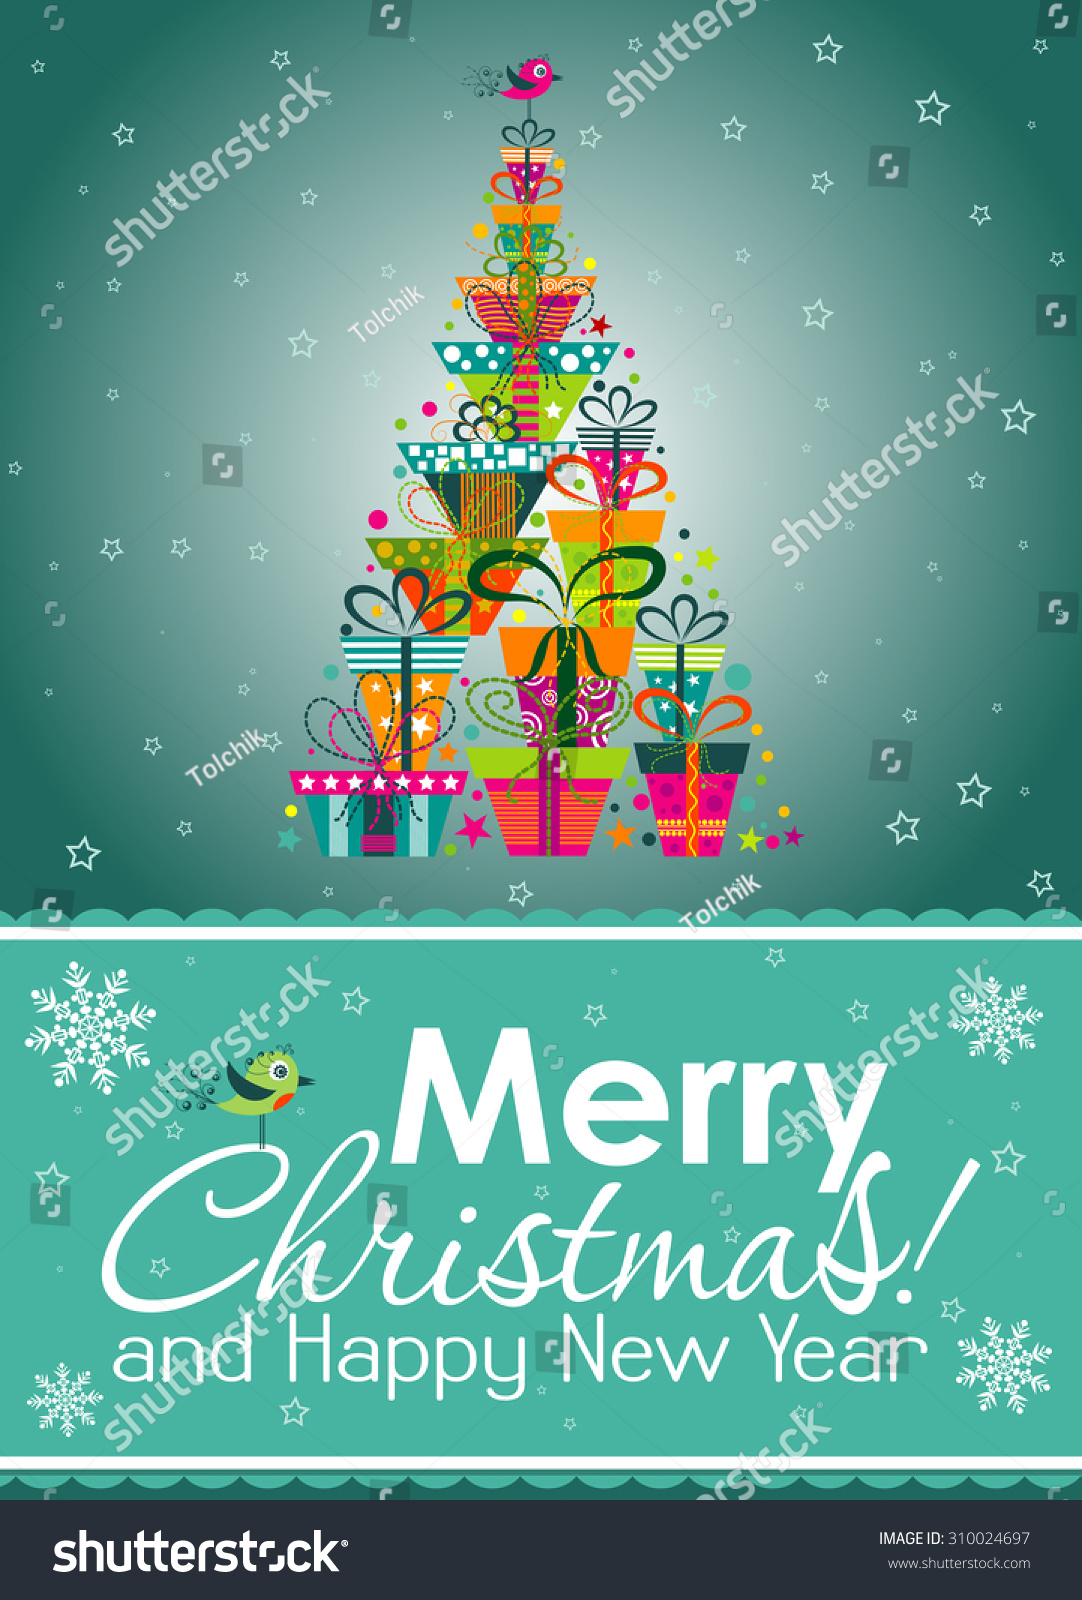 Christmas Greeting Card Vector Illustration Stock Vector (Royalty ...